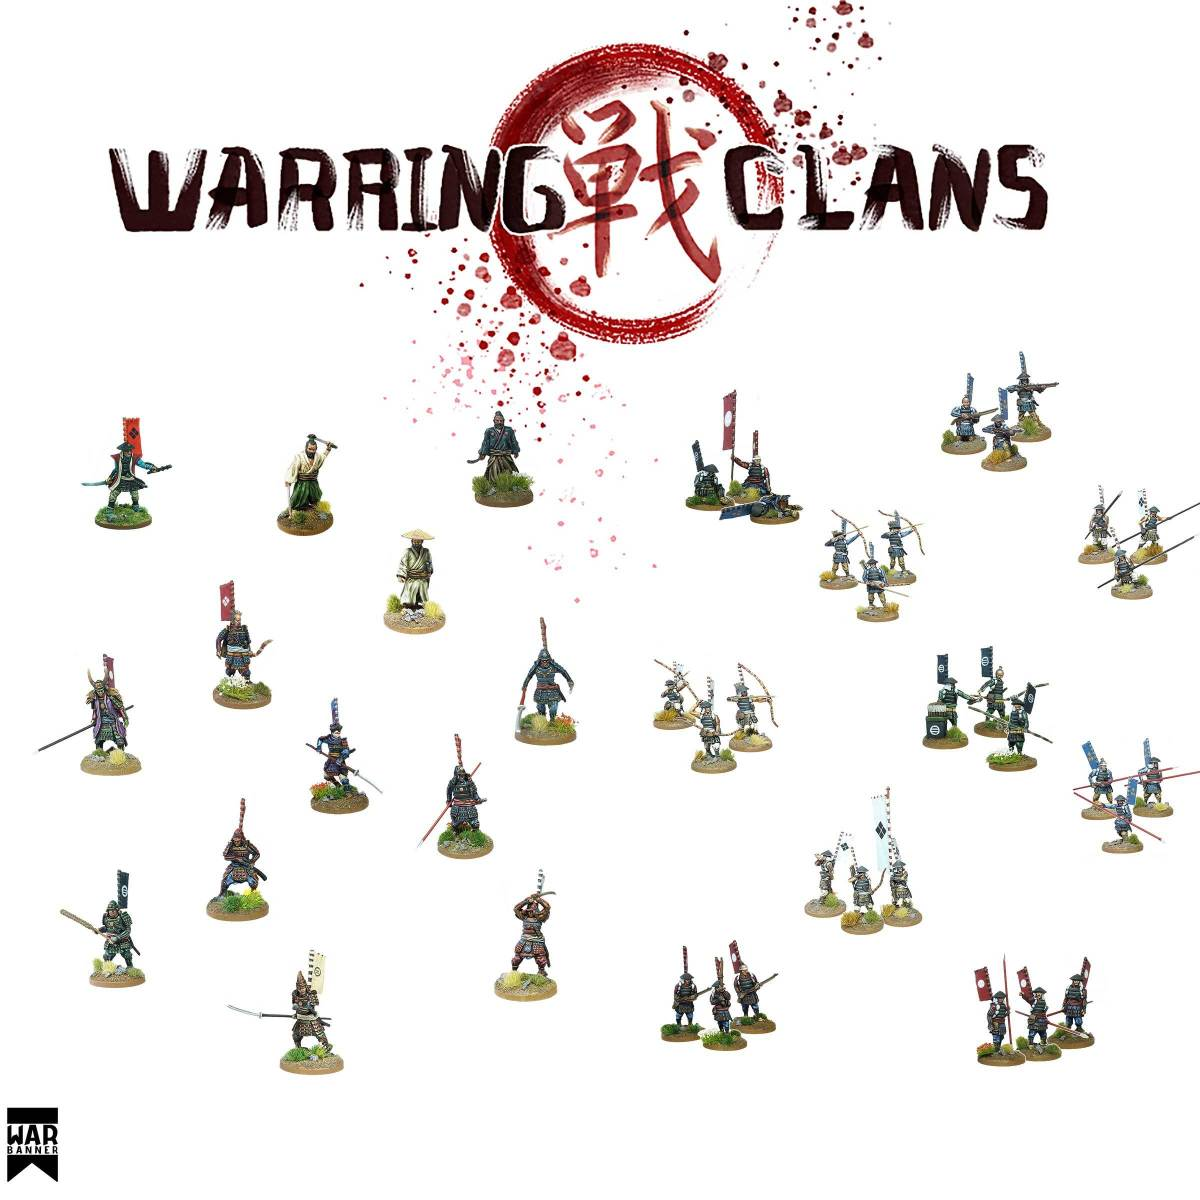 Footsore release their Warring Clans miniatures (finally!)